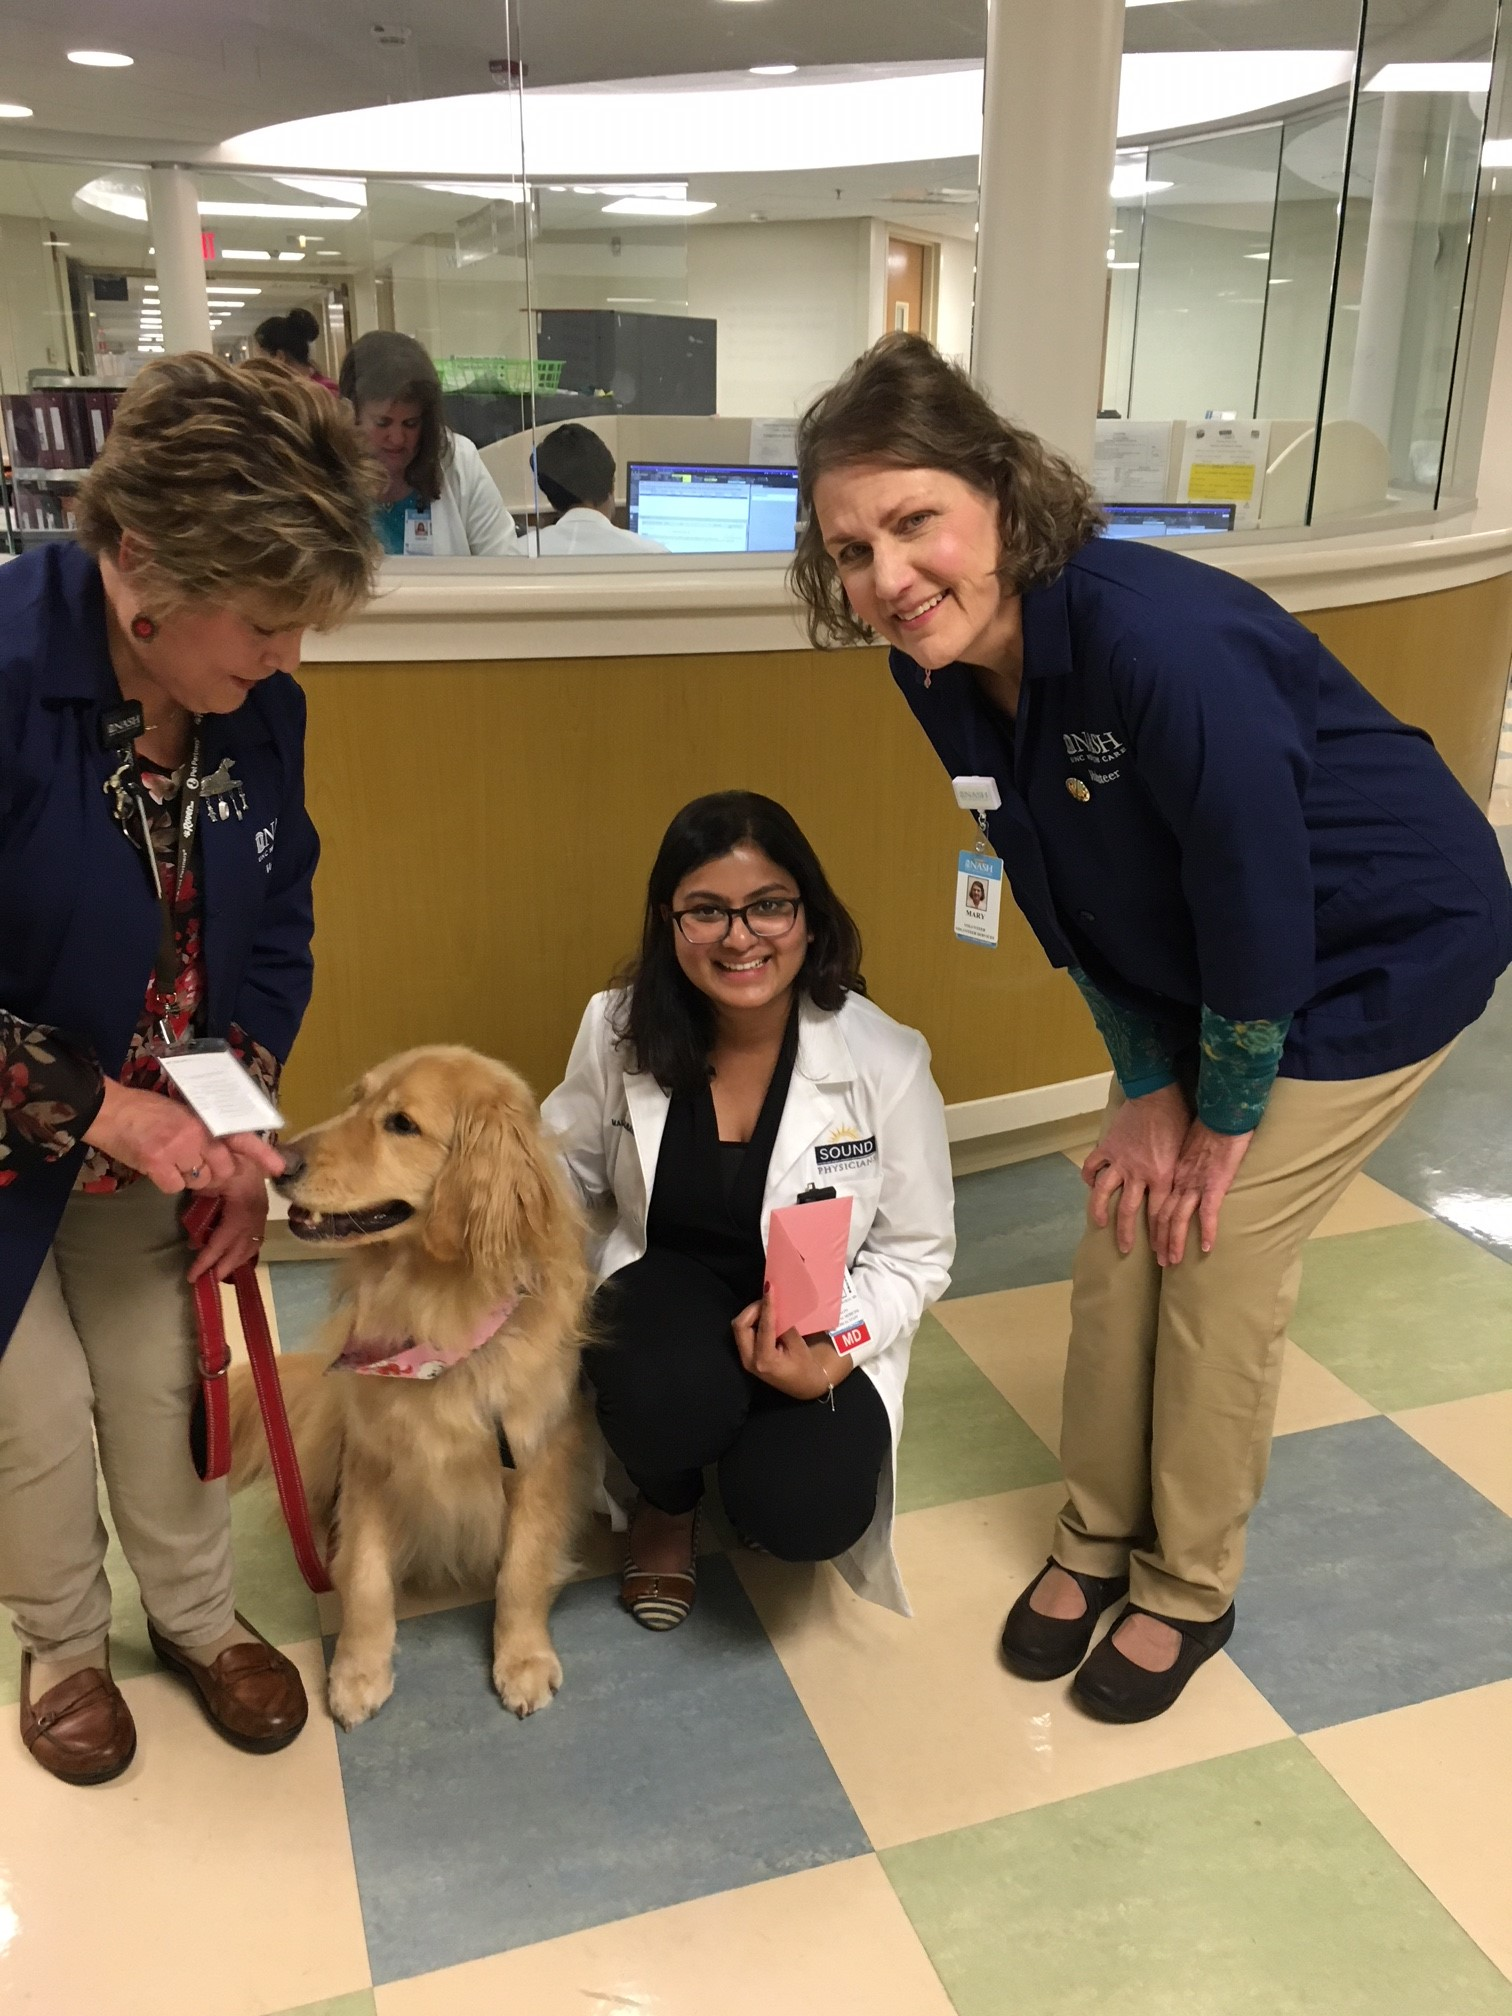 Pet therapy dog, Tucker, with doc and handlers